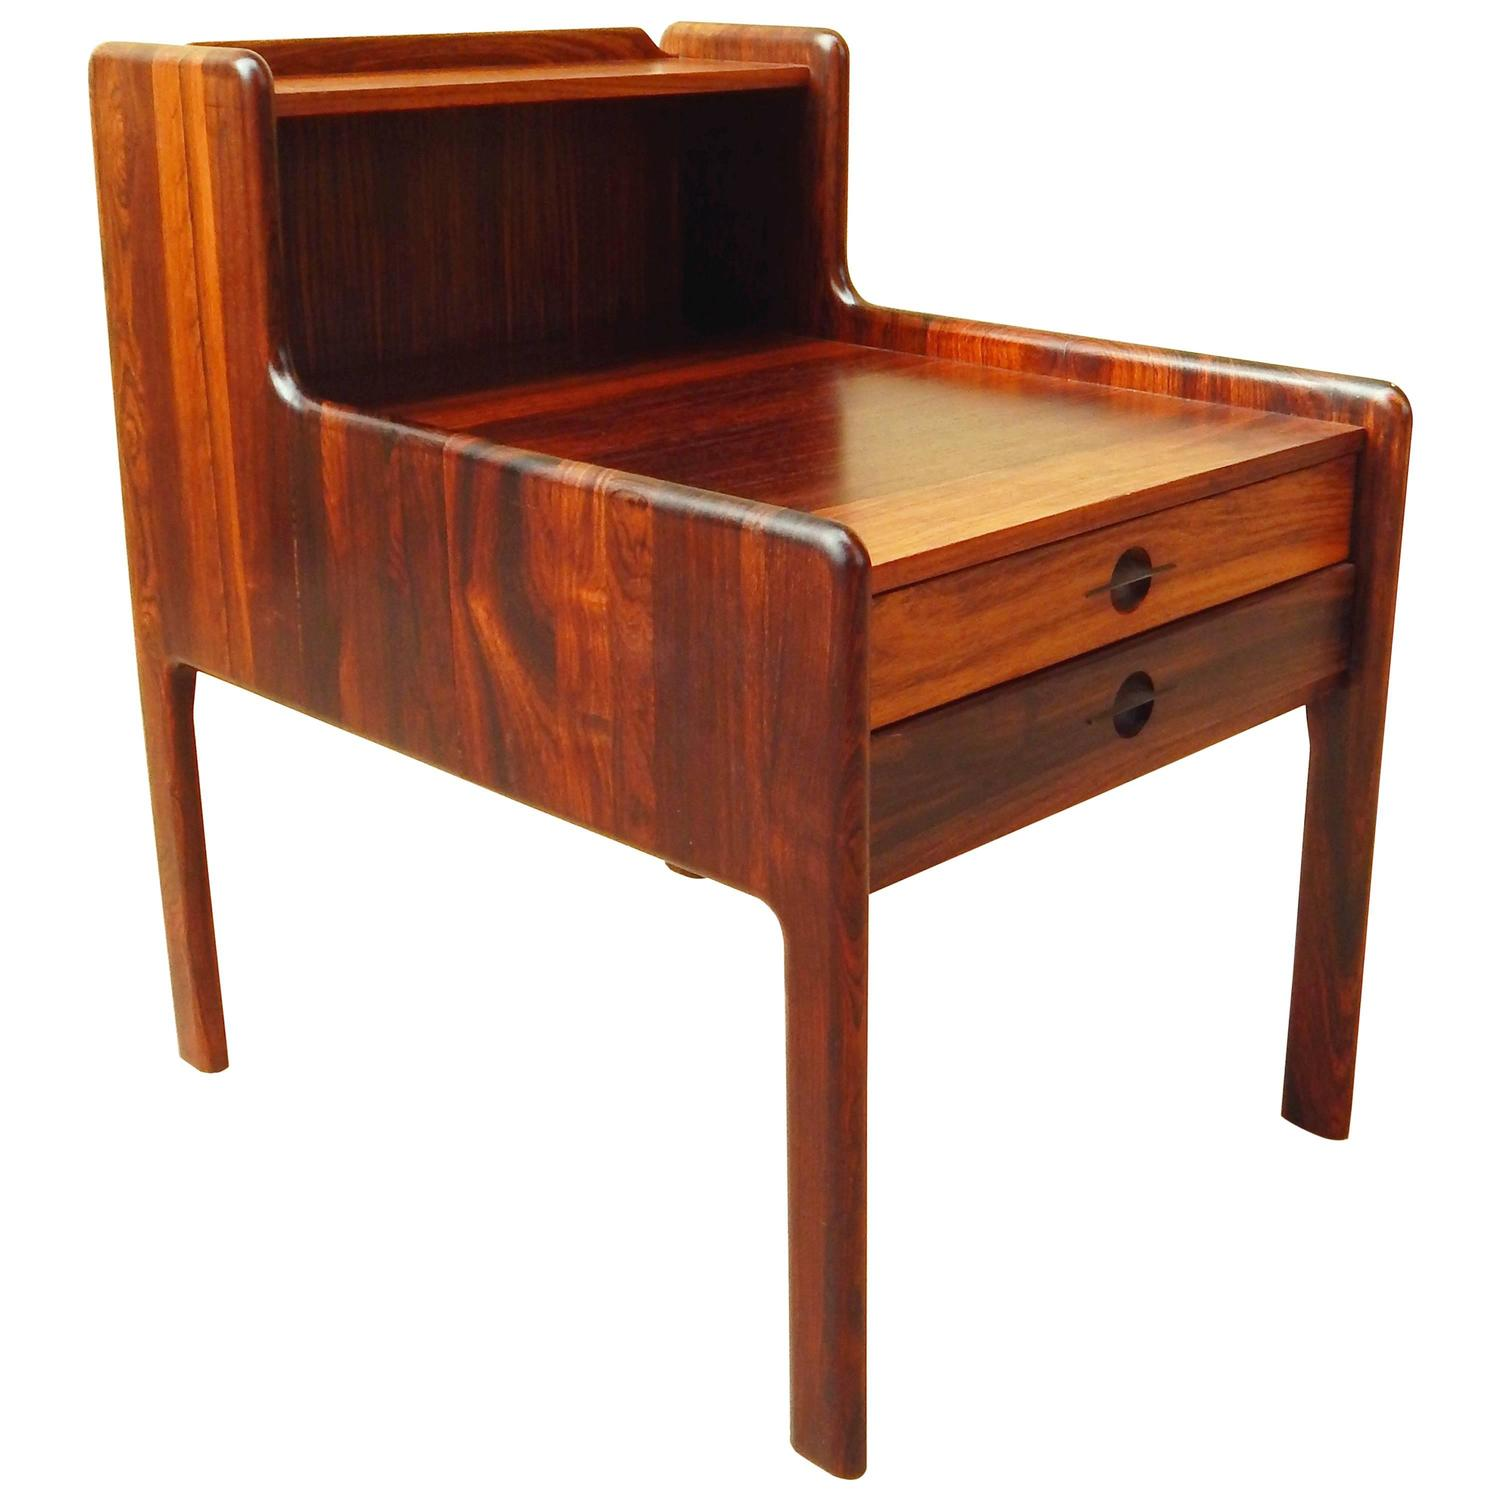 Mid Century Rose Wood Side Table Or Small Coffee Table For: Danish Mid-Century Modern Rosewood Side Table, Circa 1960